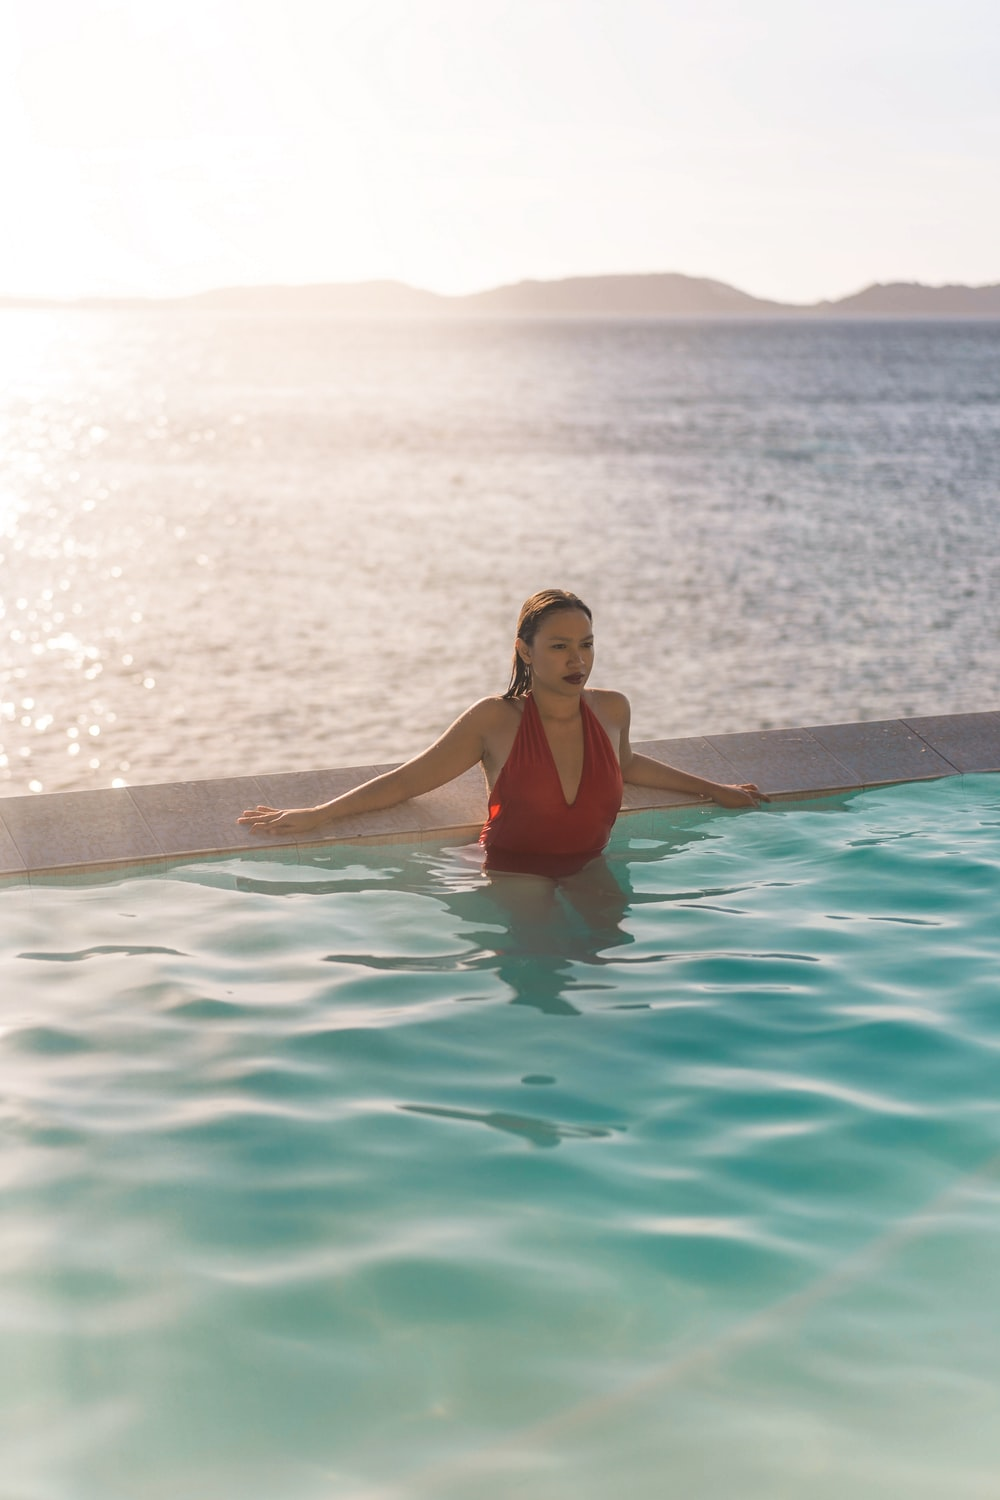 woman in red swimsuit in swimming pool during daytime